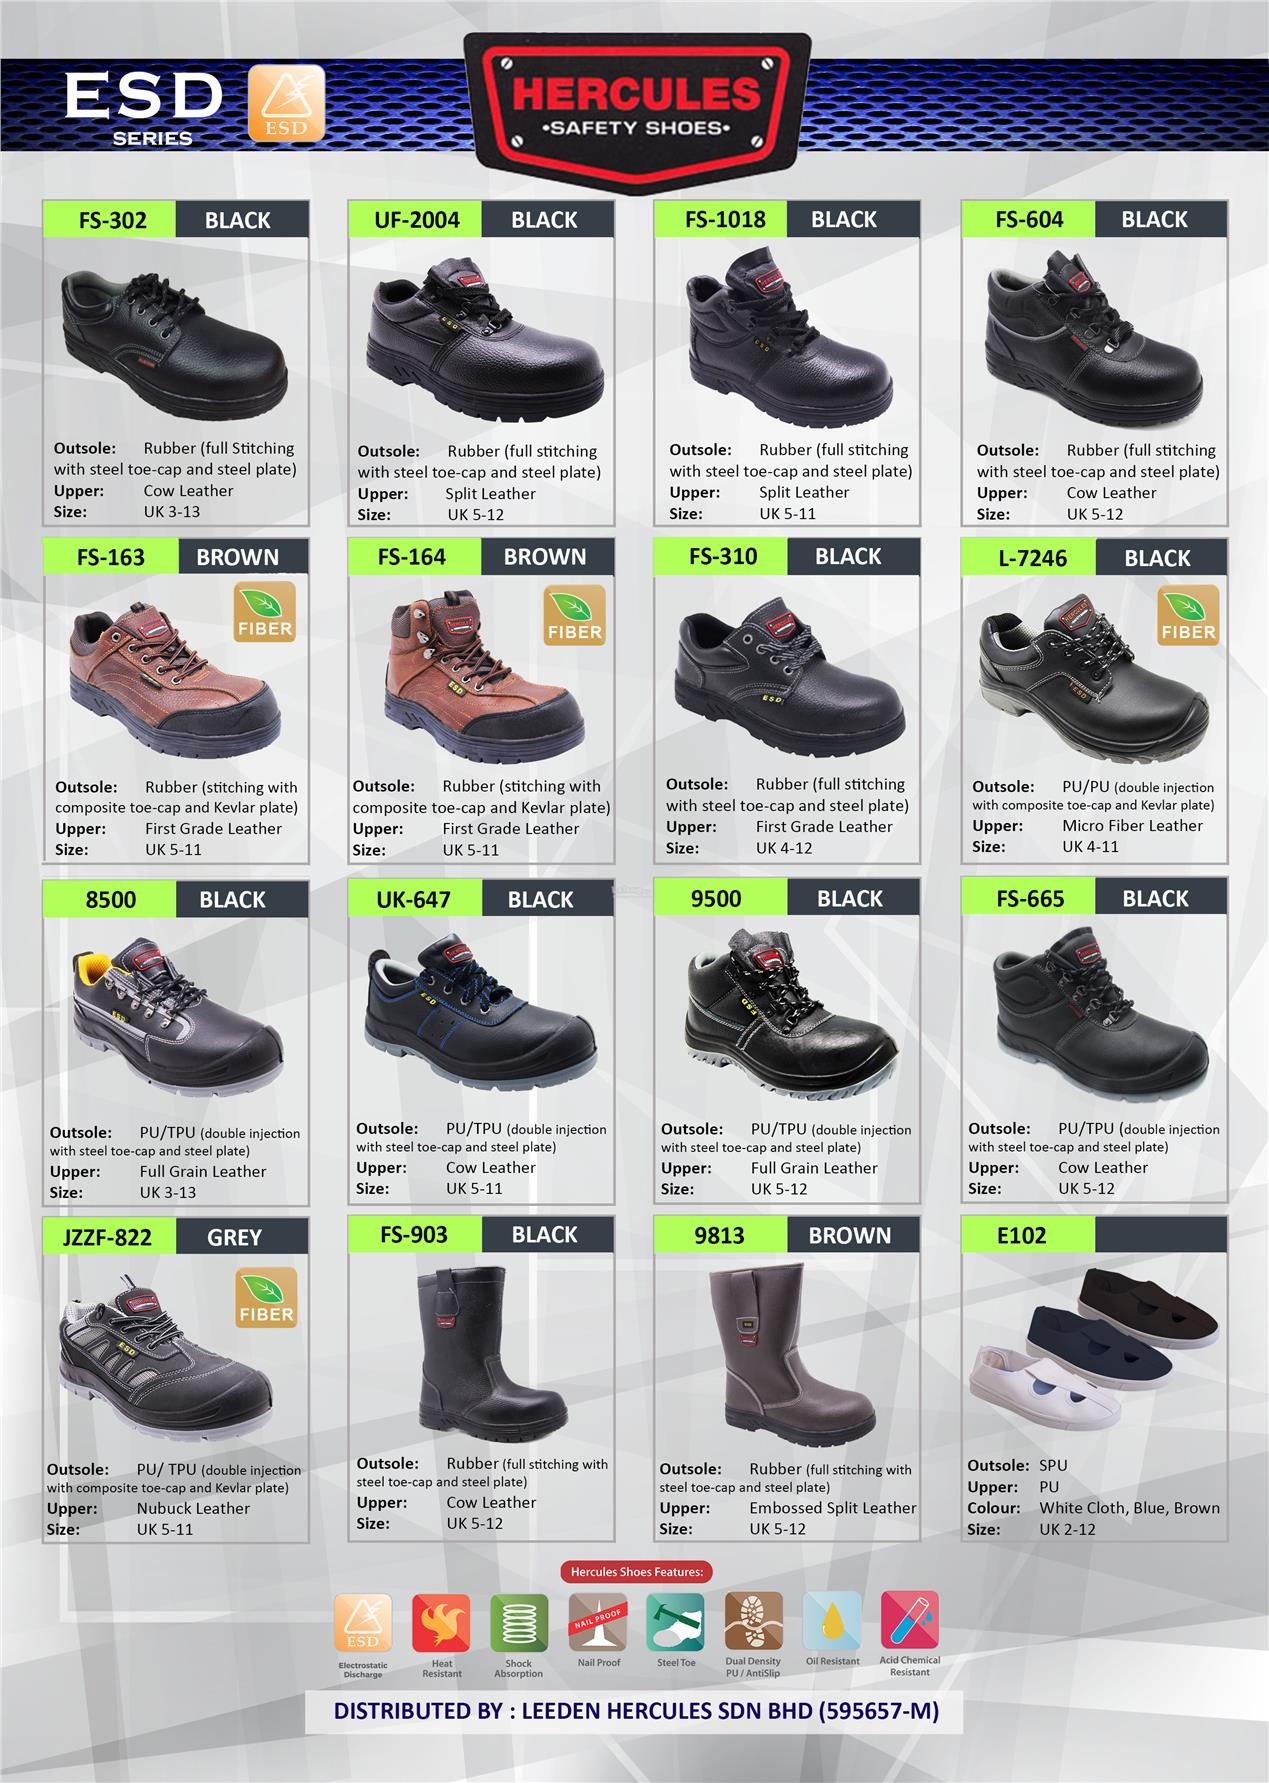 Hercules esd safety shoes cow leather steel shoes boot sku jpg 1269x1783 Esd  shoes product 2fa8d43672